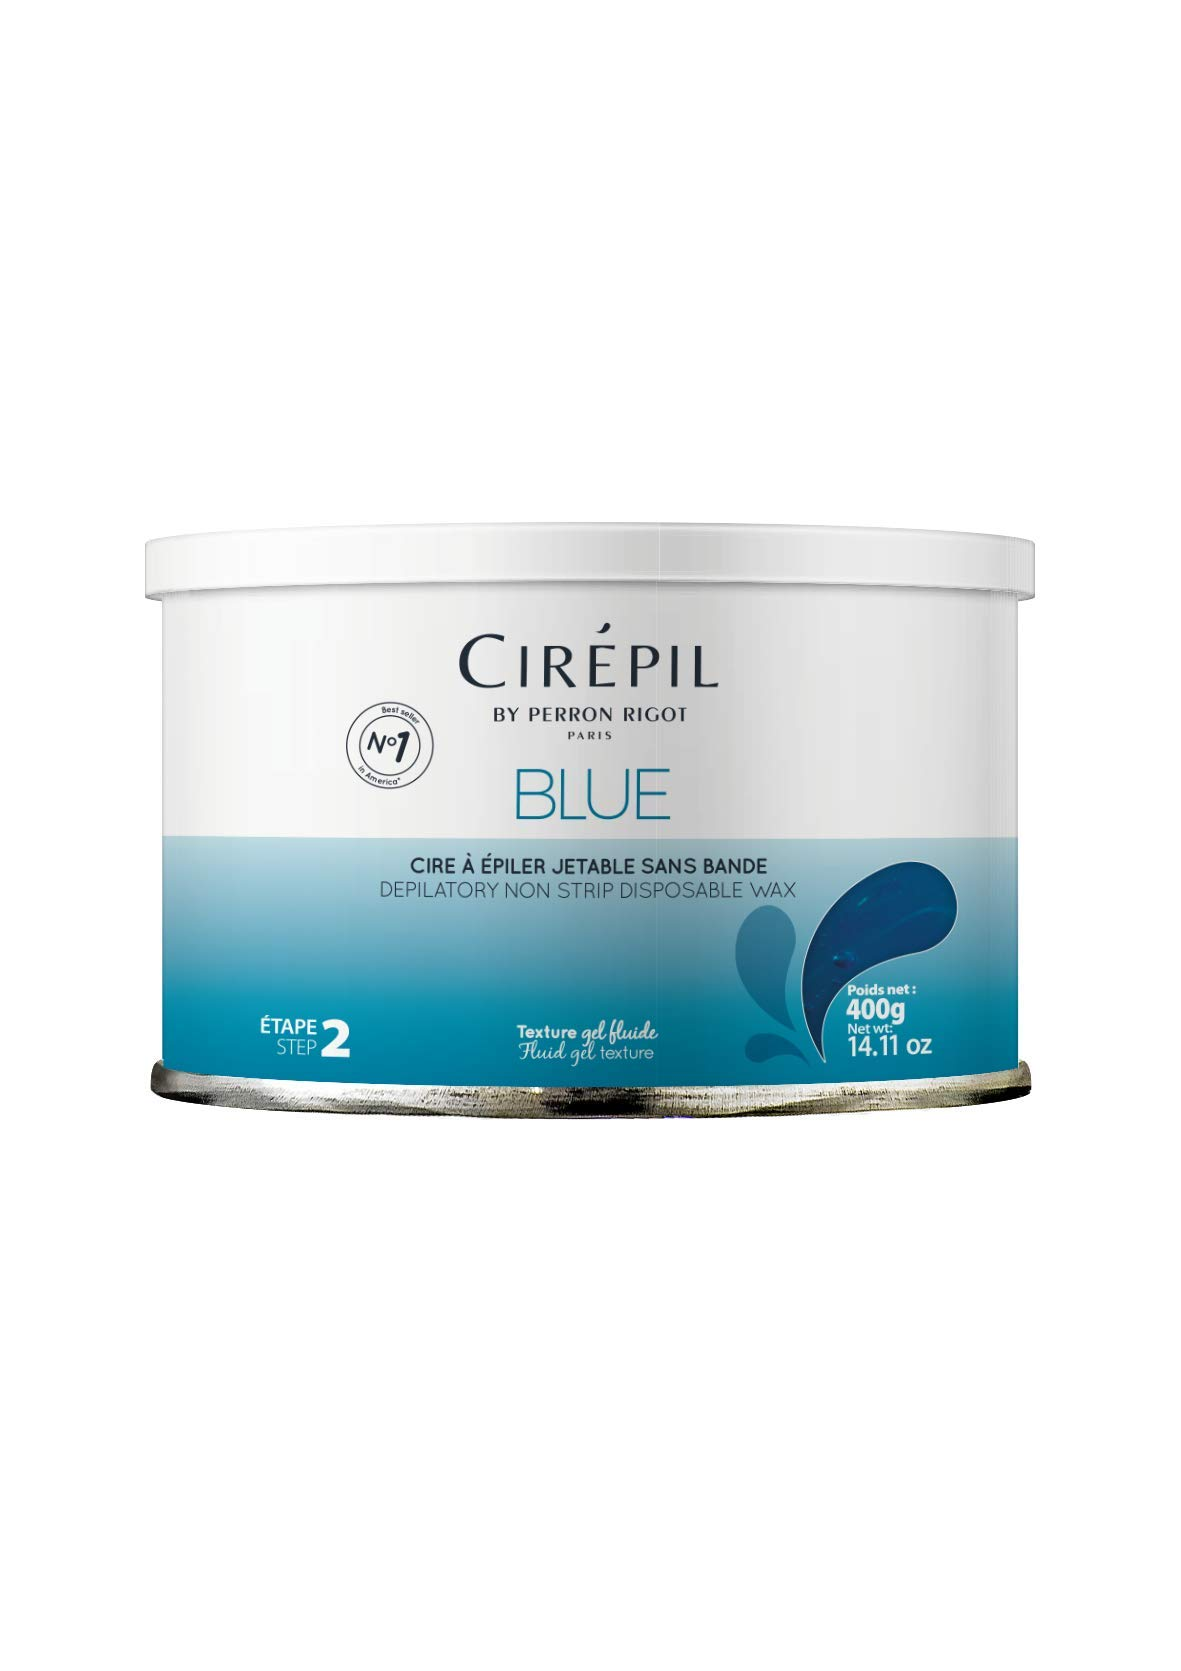 Cirepil The Original Blue Wax by Perron Rigot - Tin, 400g/14.11 oz. Solid Wax NOT Beads